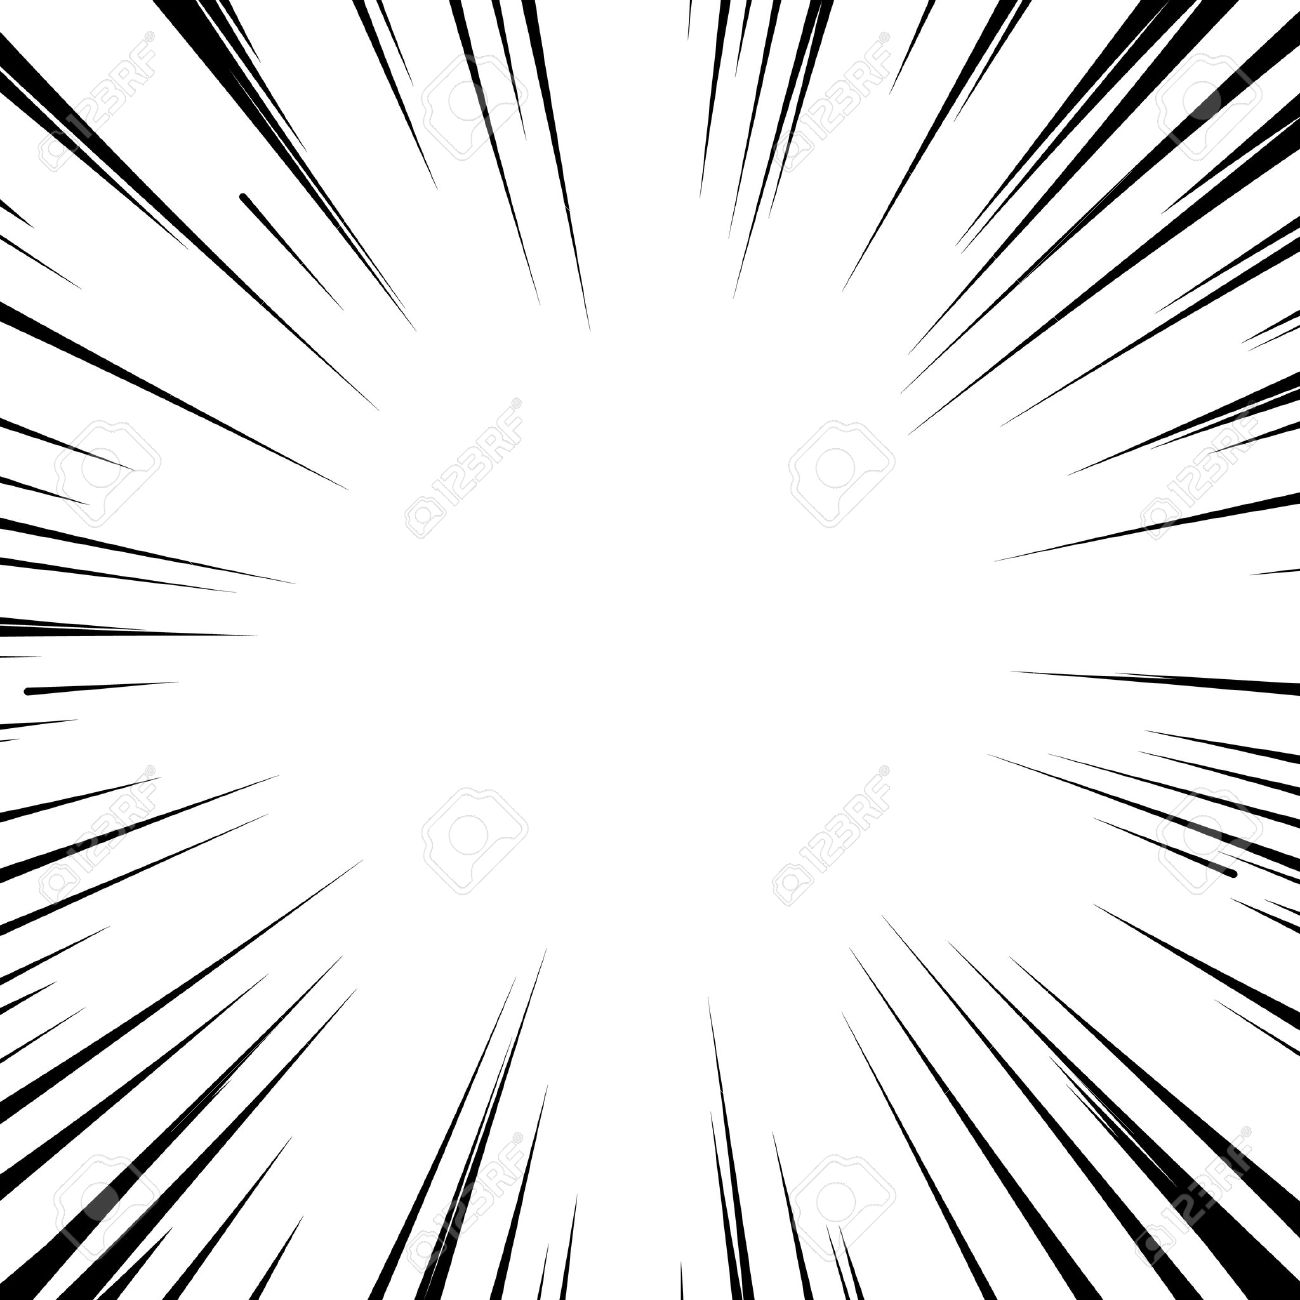 1300x1300 Abstract Comic Book Flash Explosion Radial Lines Background